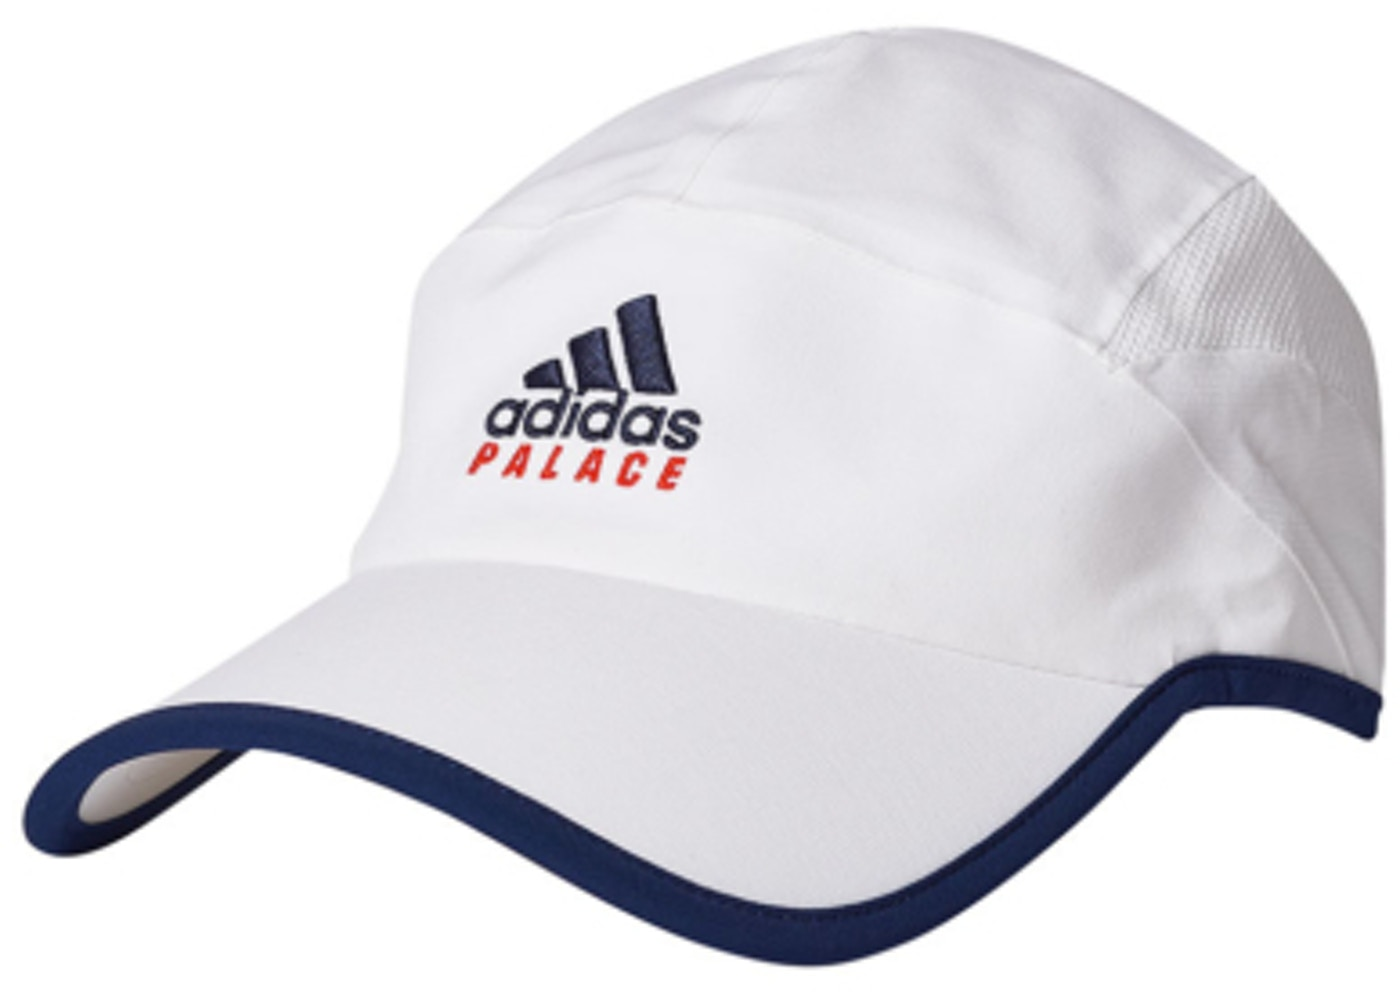 Palace adidas On Court Cap White - SS18 9e34b733176